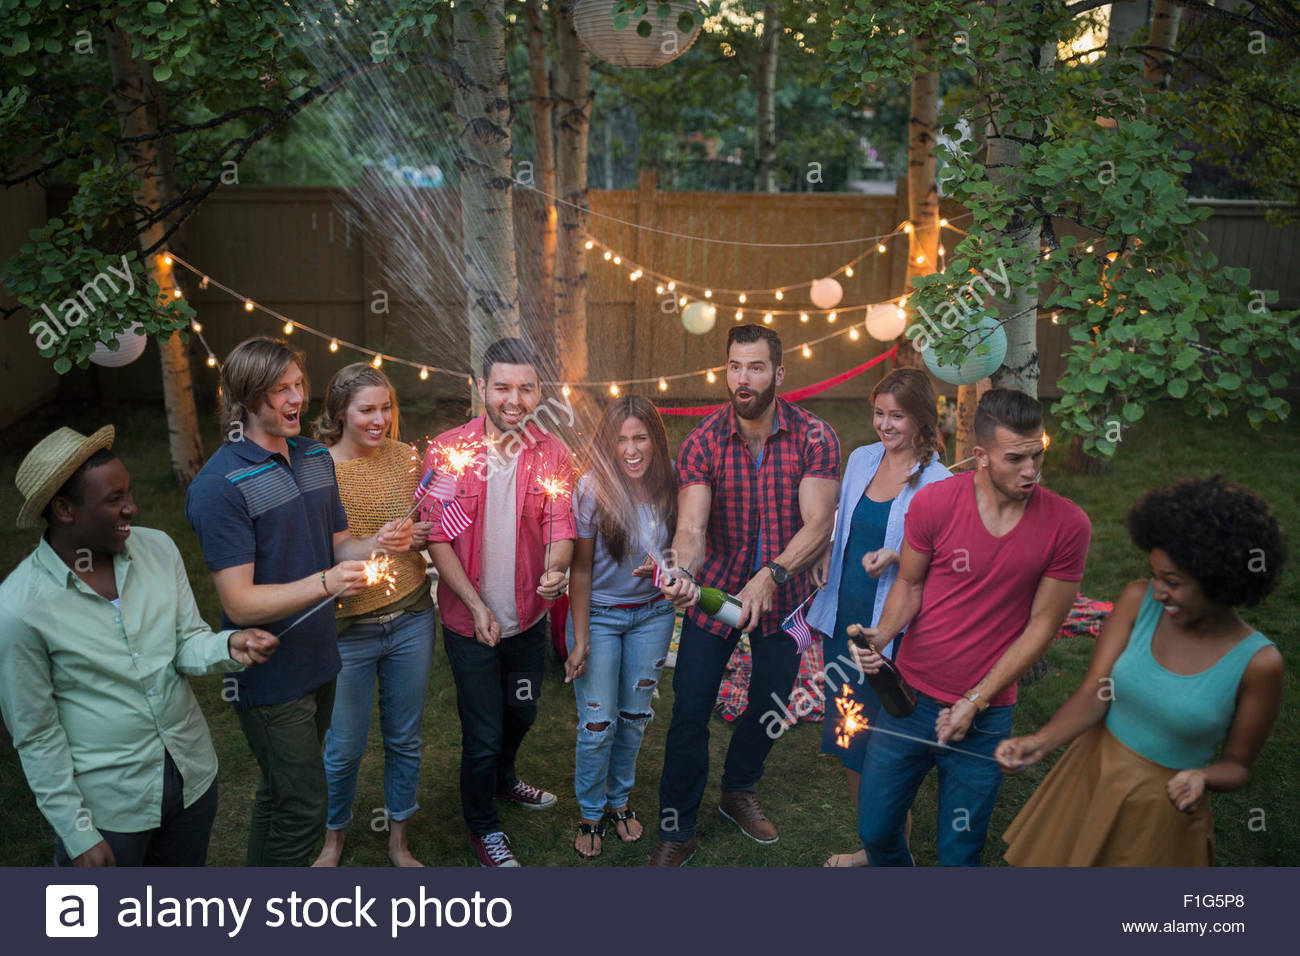 Friends With Sparklers At Backyard Party